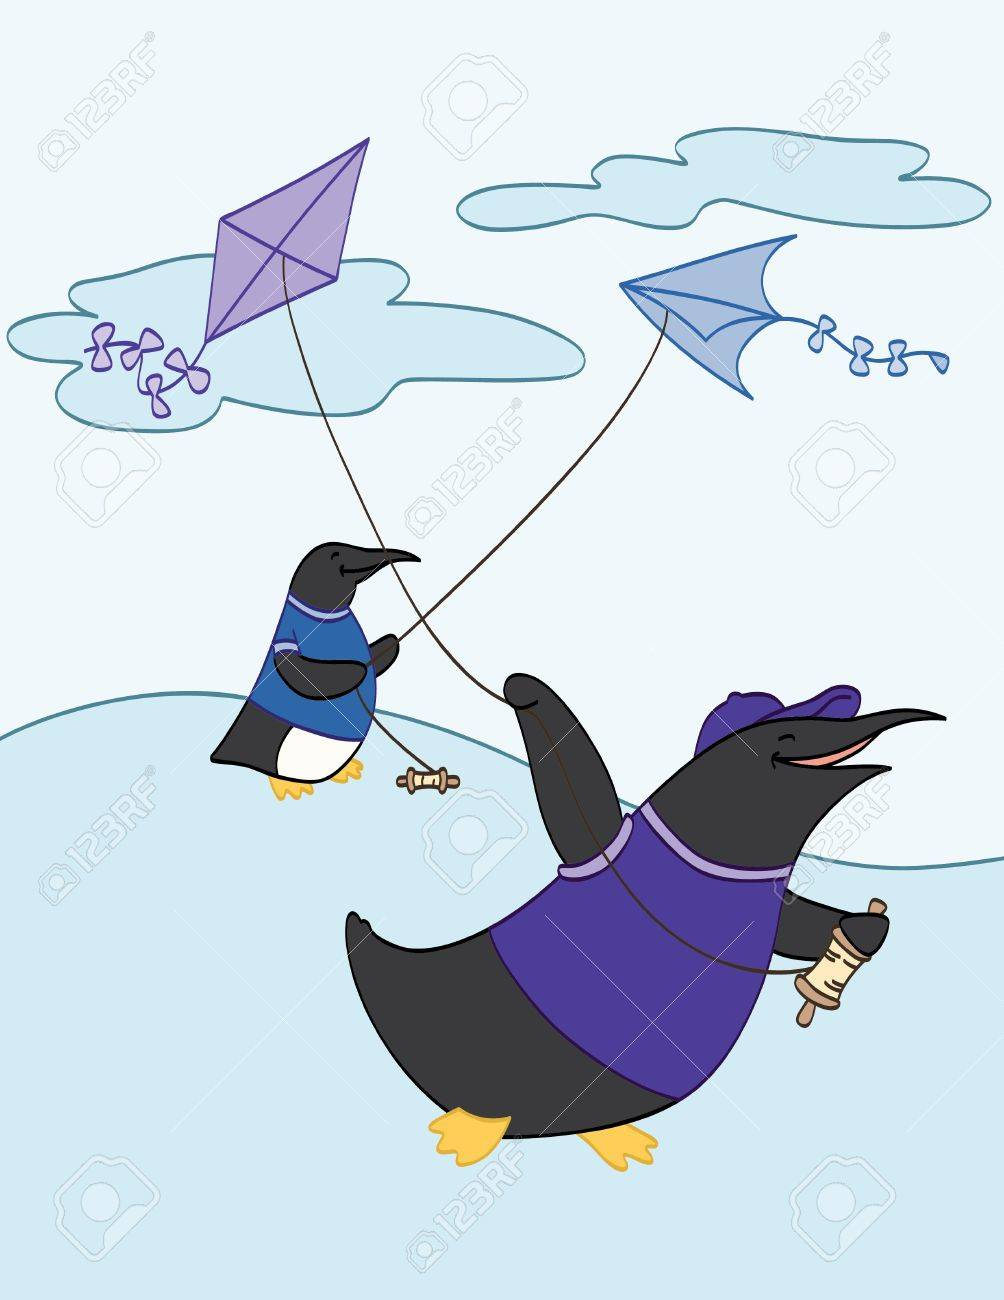 Flying Kites with Friends Stock Vector - 18365821